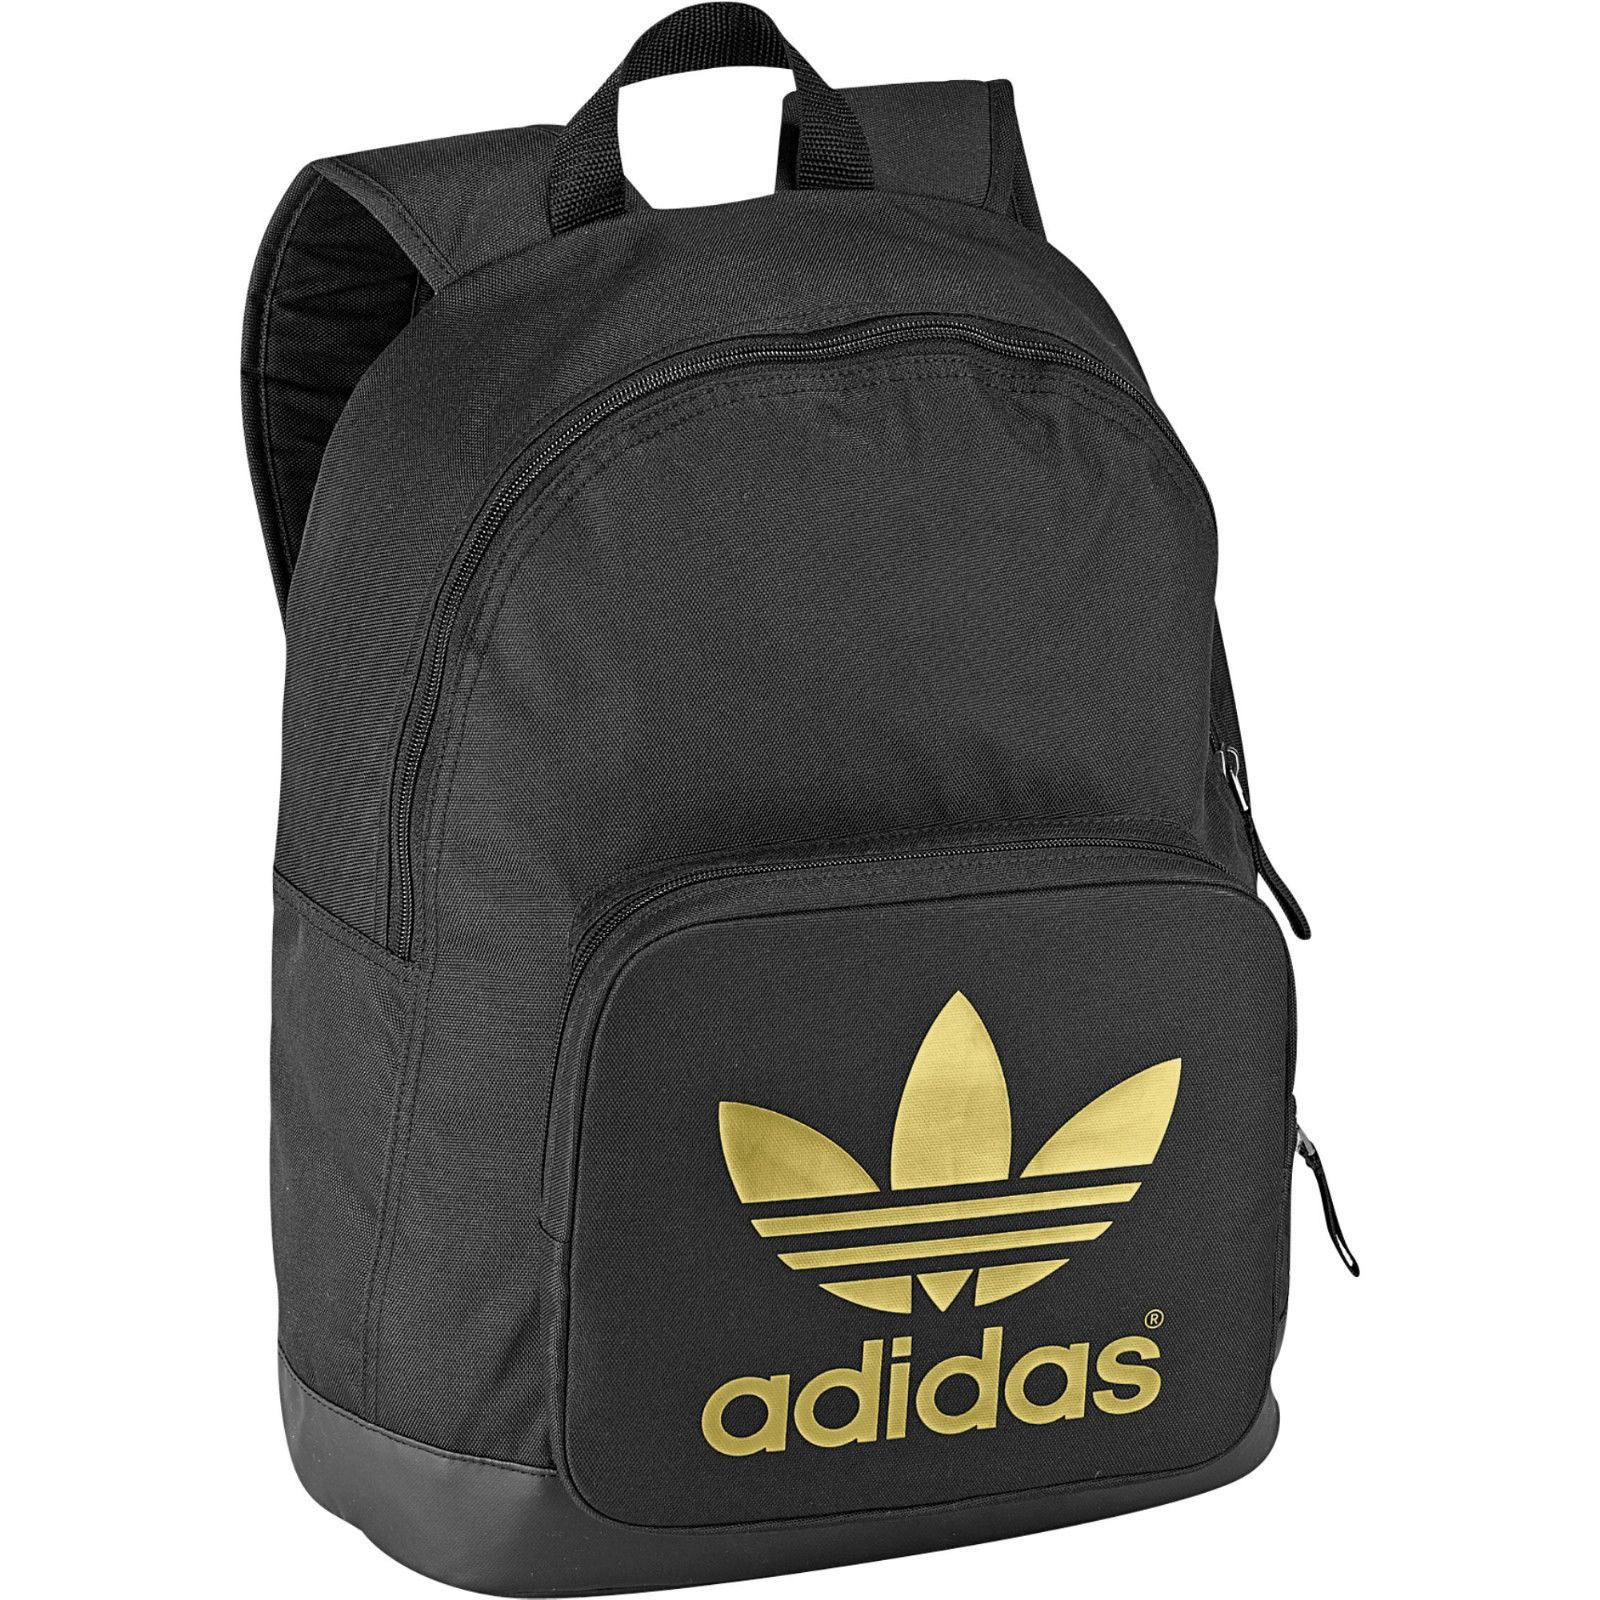 e8da7bf1fff4 Adidas Originals Backpacks Mens Boys Girls Adidas School Backbags Rucksacks